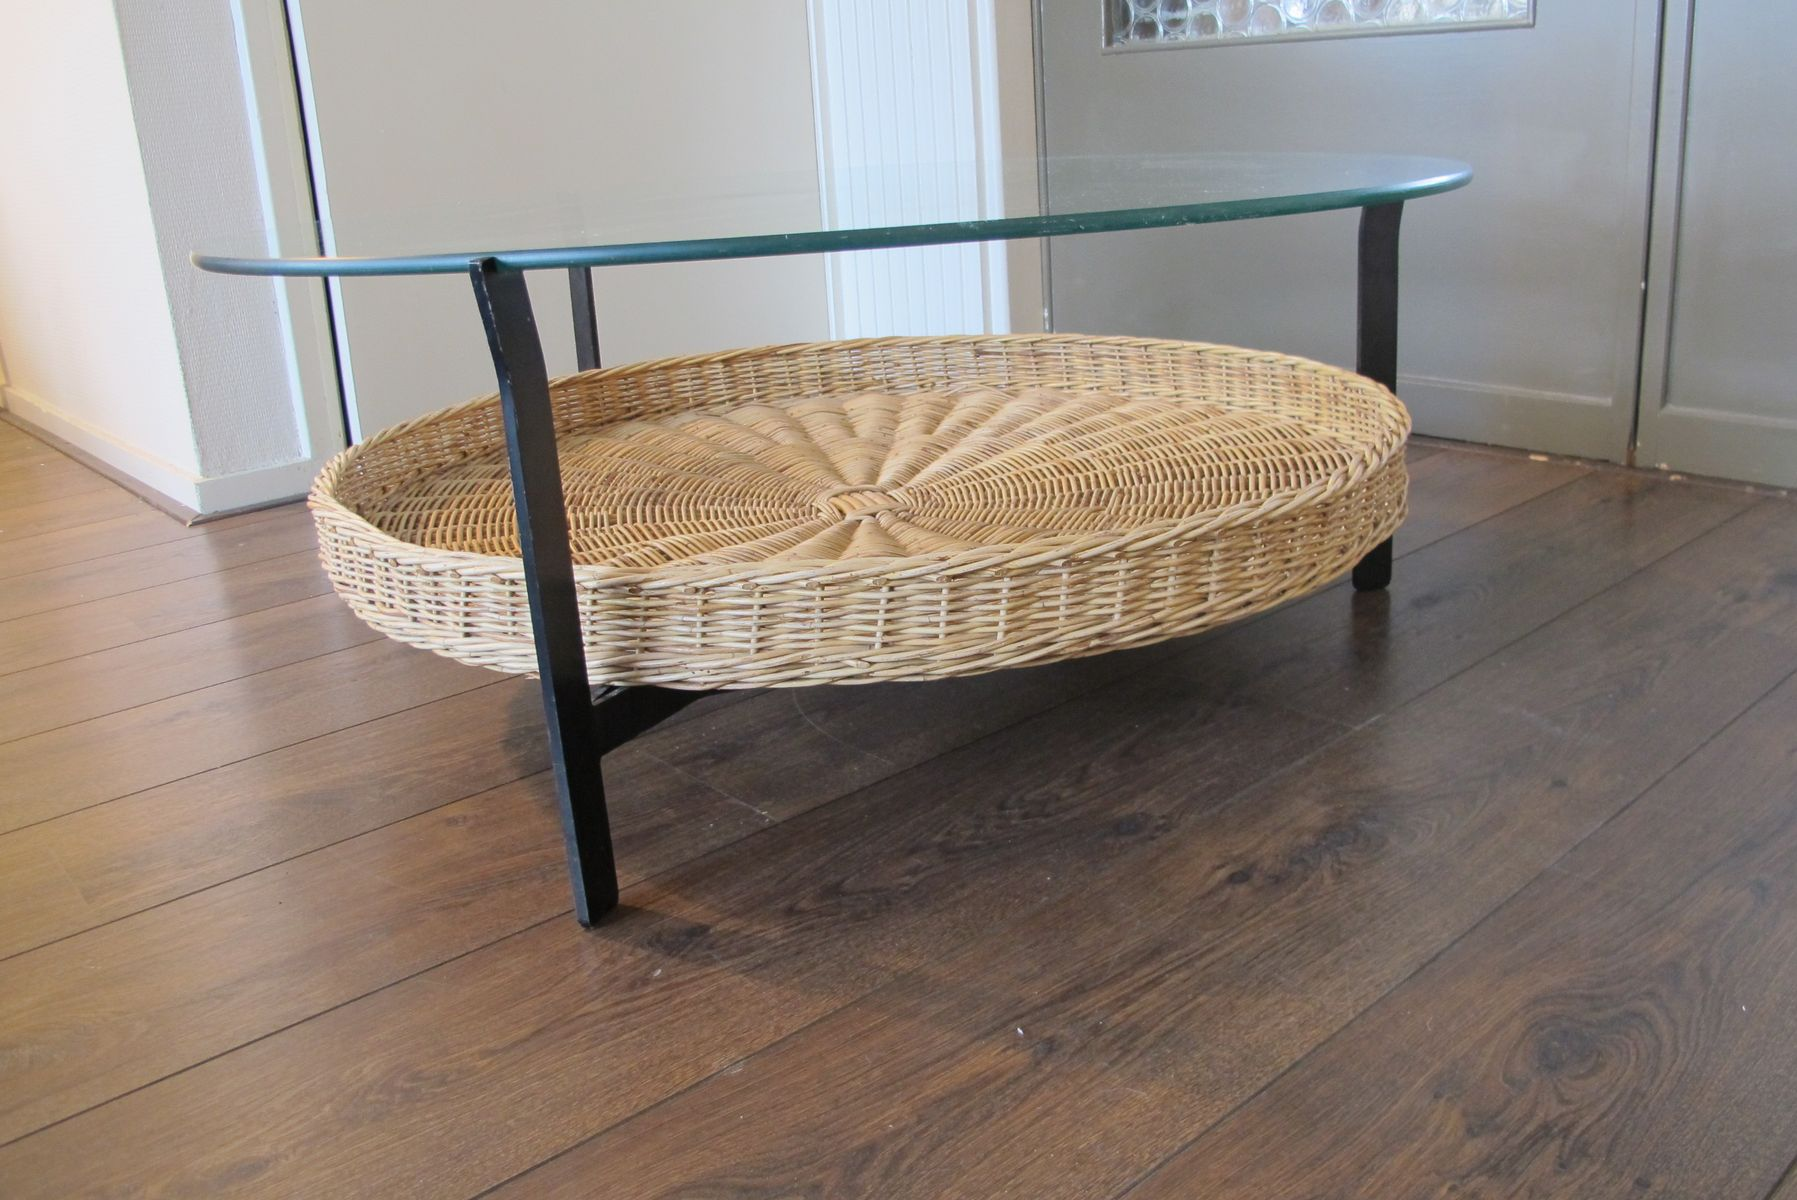 Vintage Coffee Table With Rattan Magazine Basket 1965 For Sale At Pamono